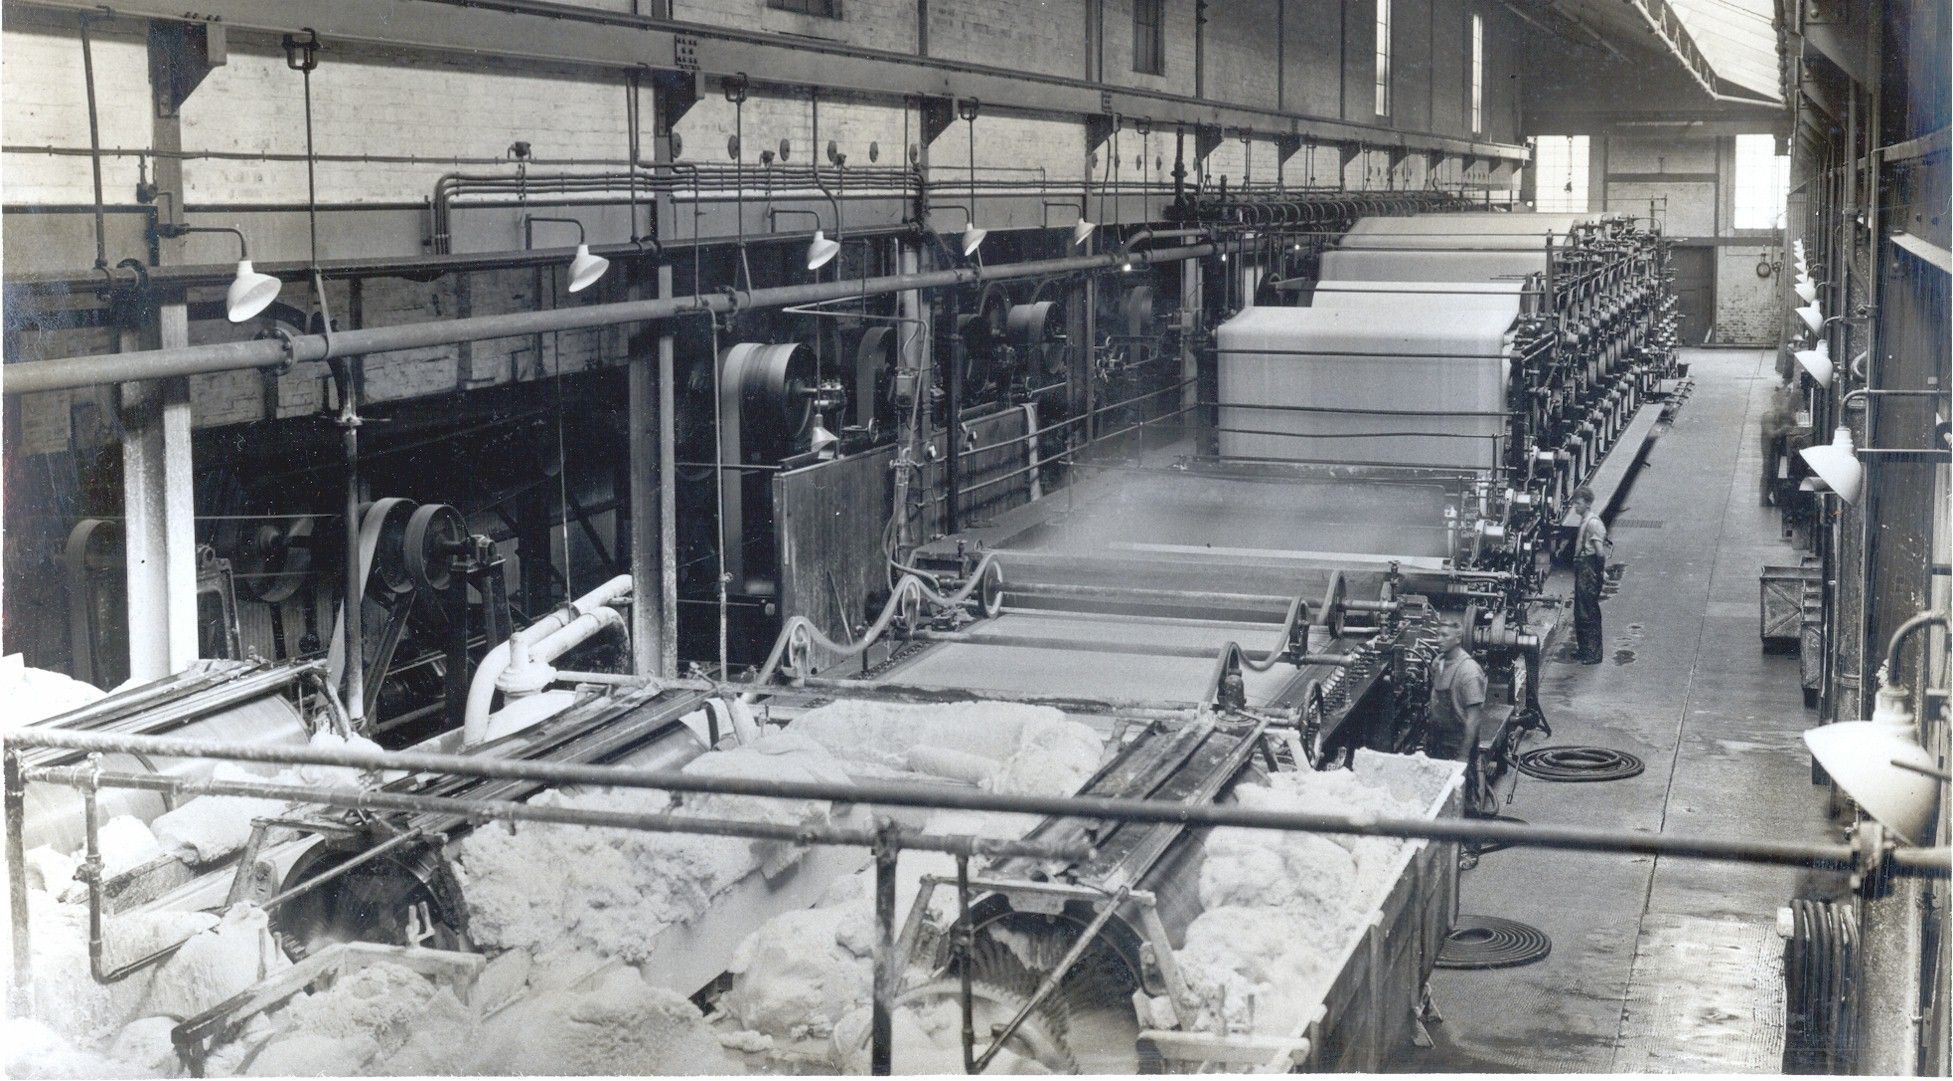 industrial production paper making in the uk in the early s industrial production paper making in the uk in the early 1900s